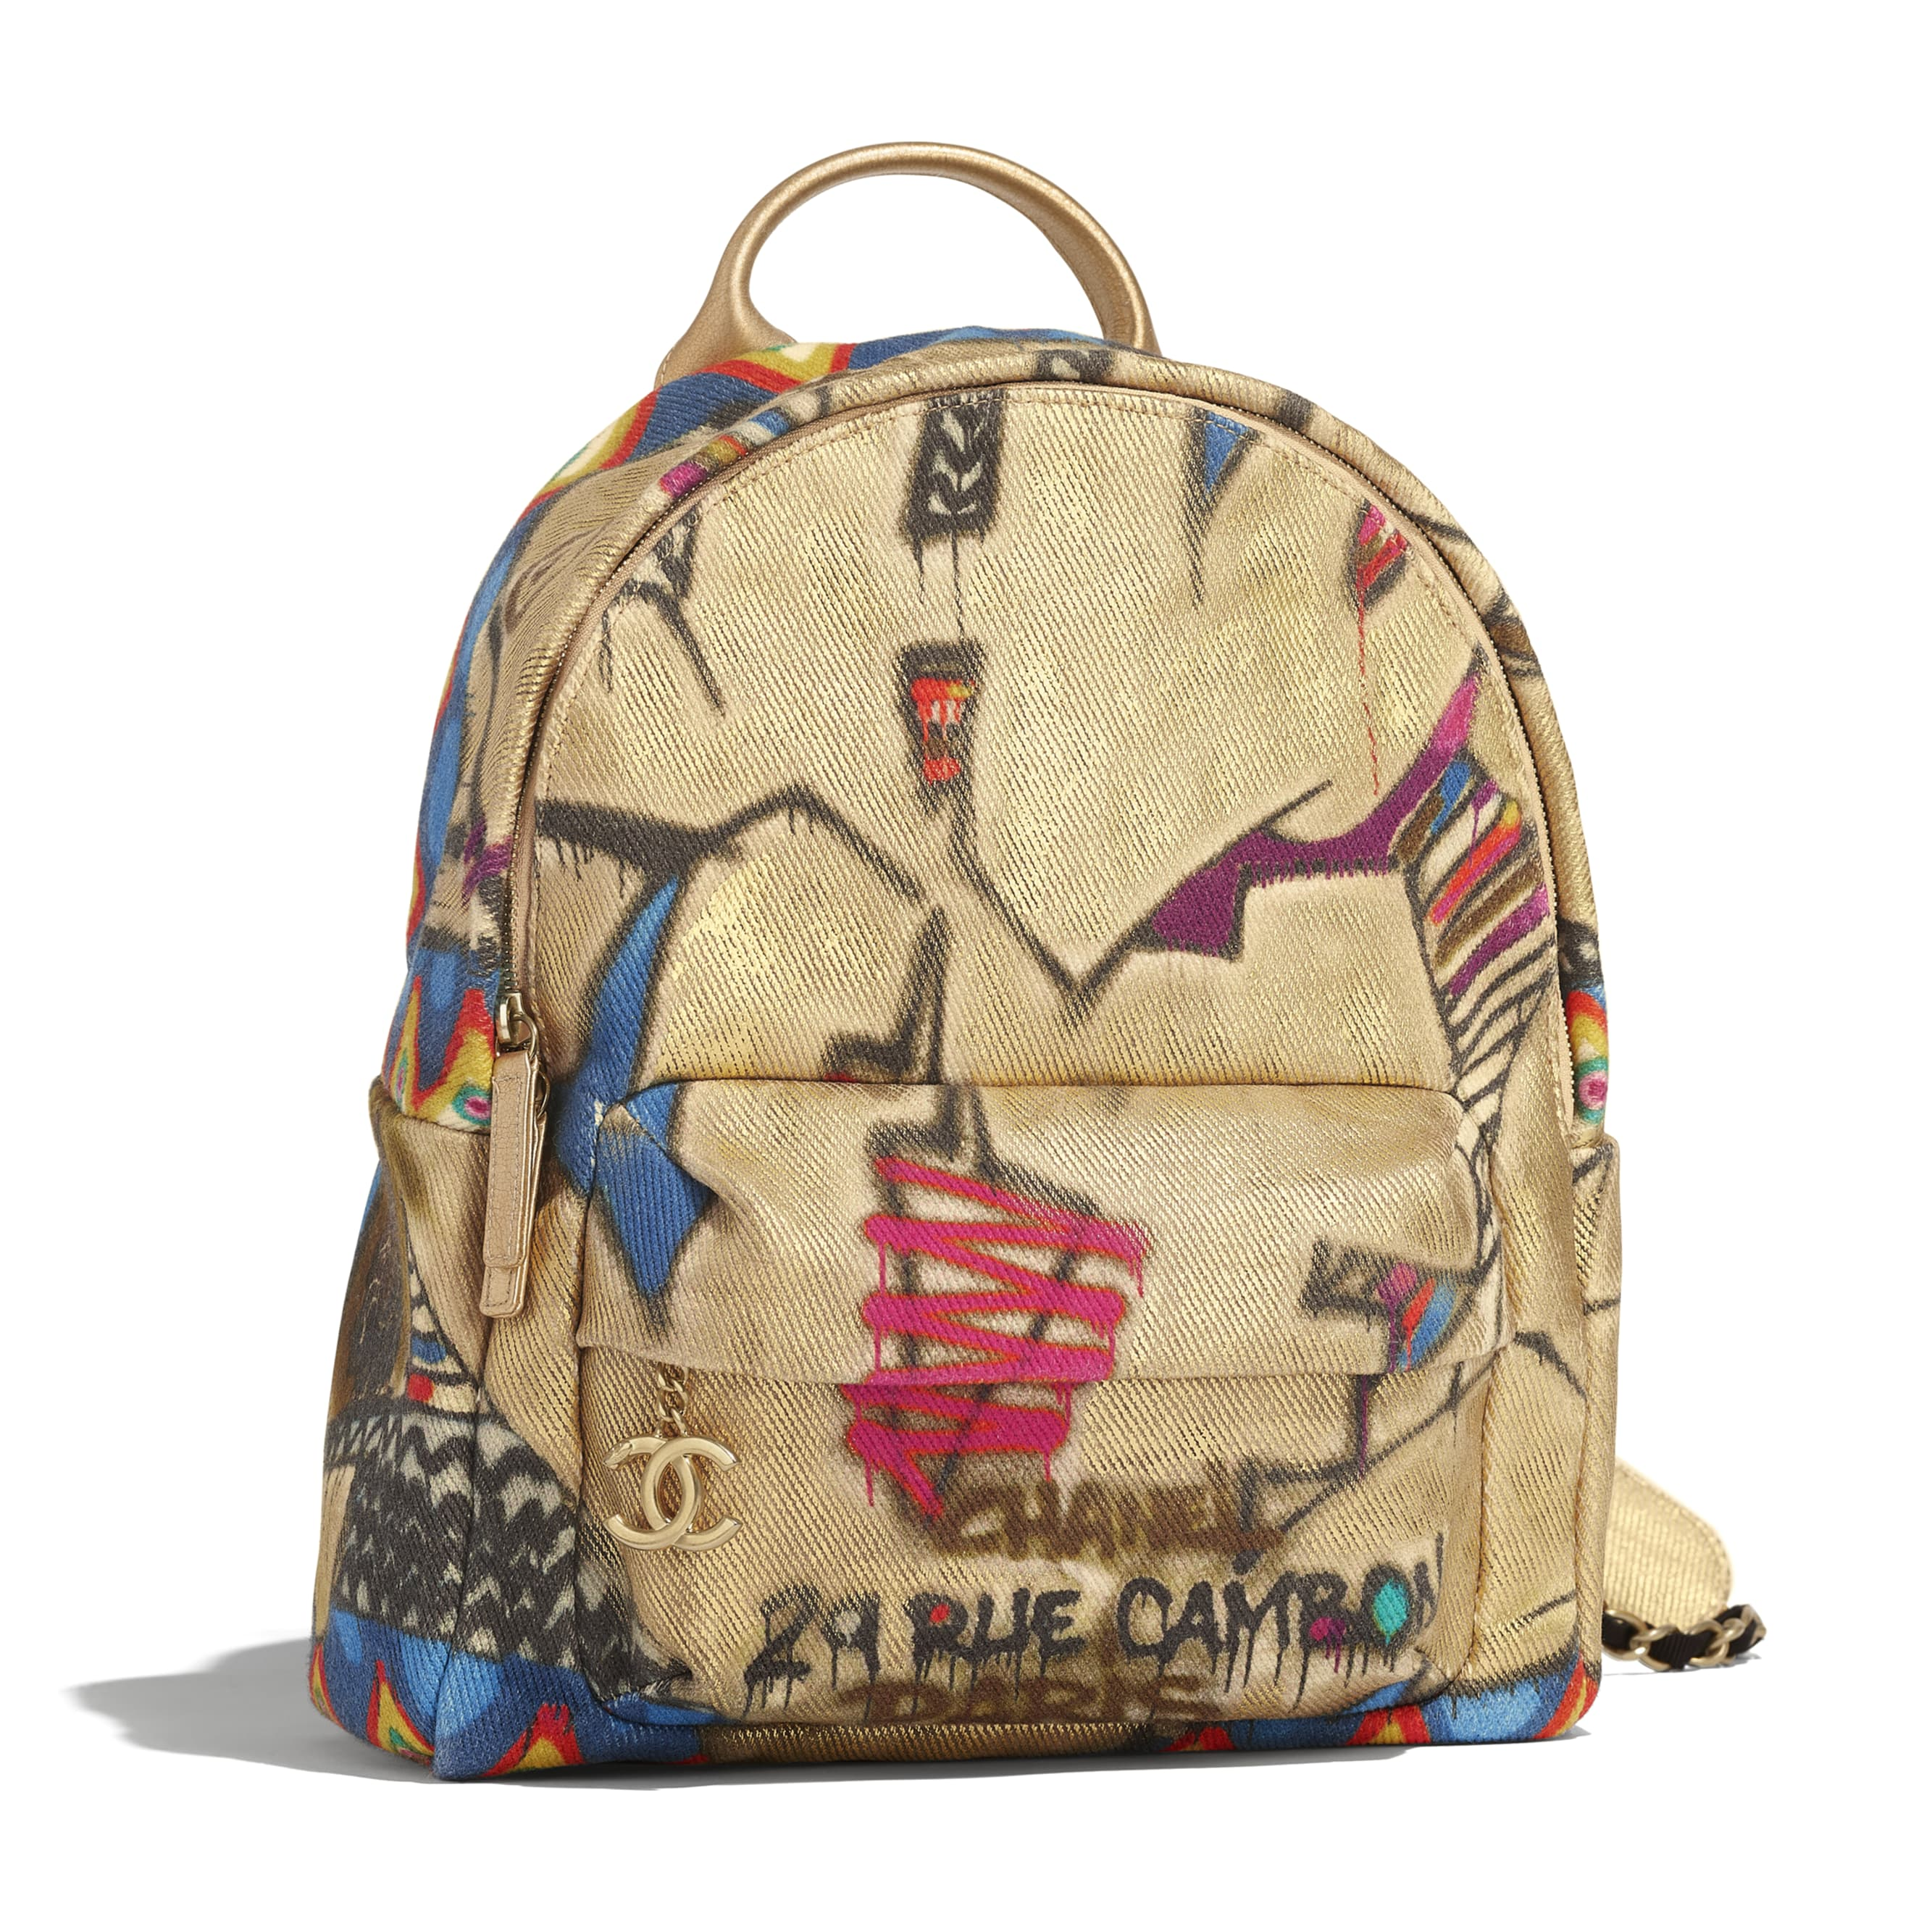 Backpack - Multicolor - Calfskin, Cotton & Gold-Tone Metal - Default view - see standard sized version